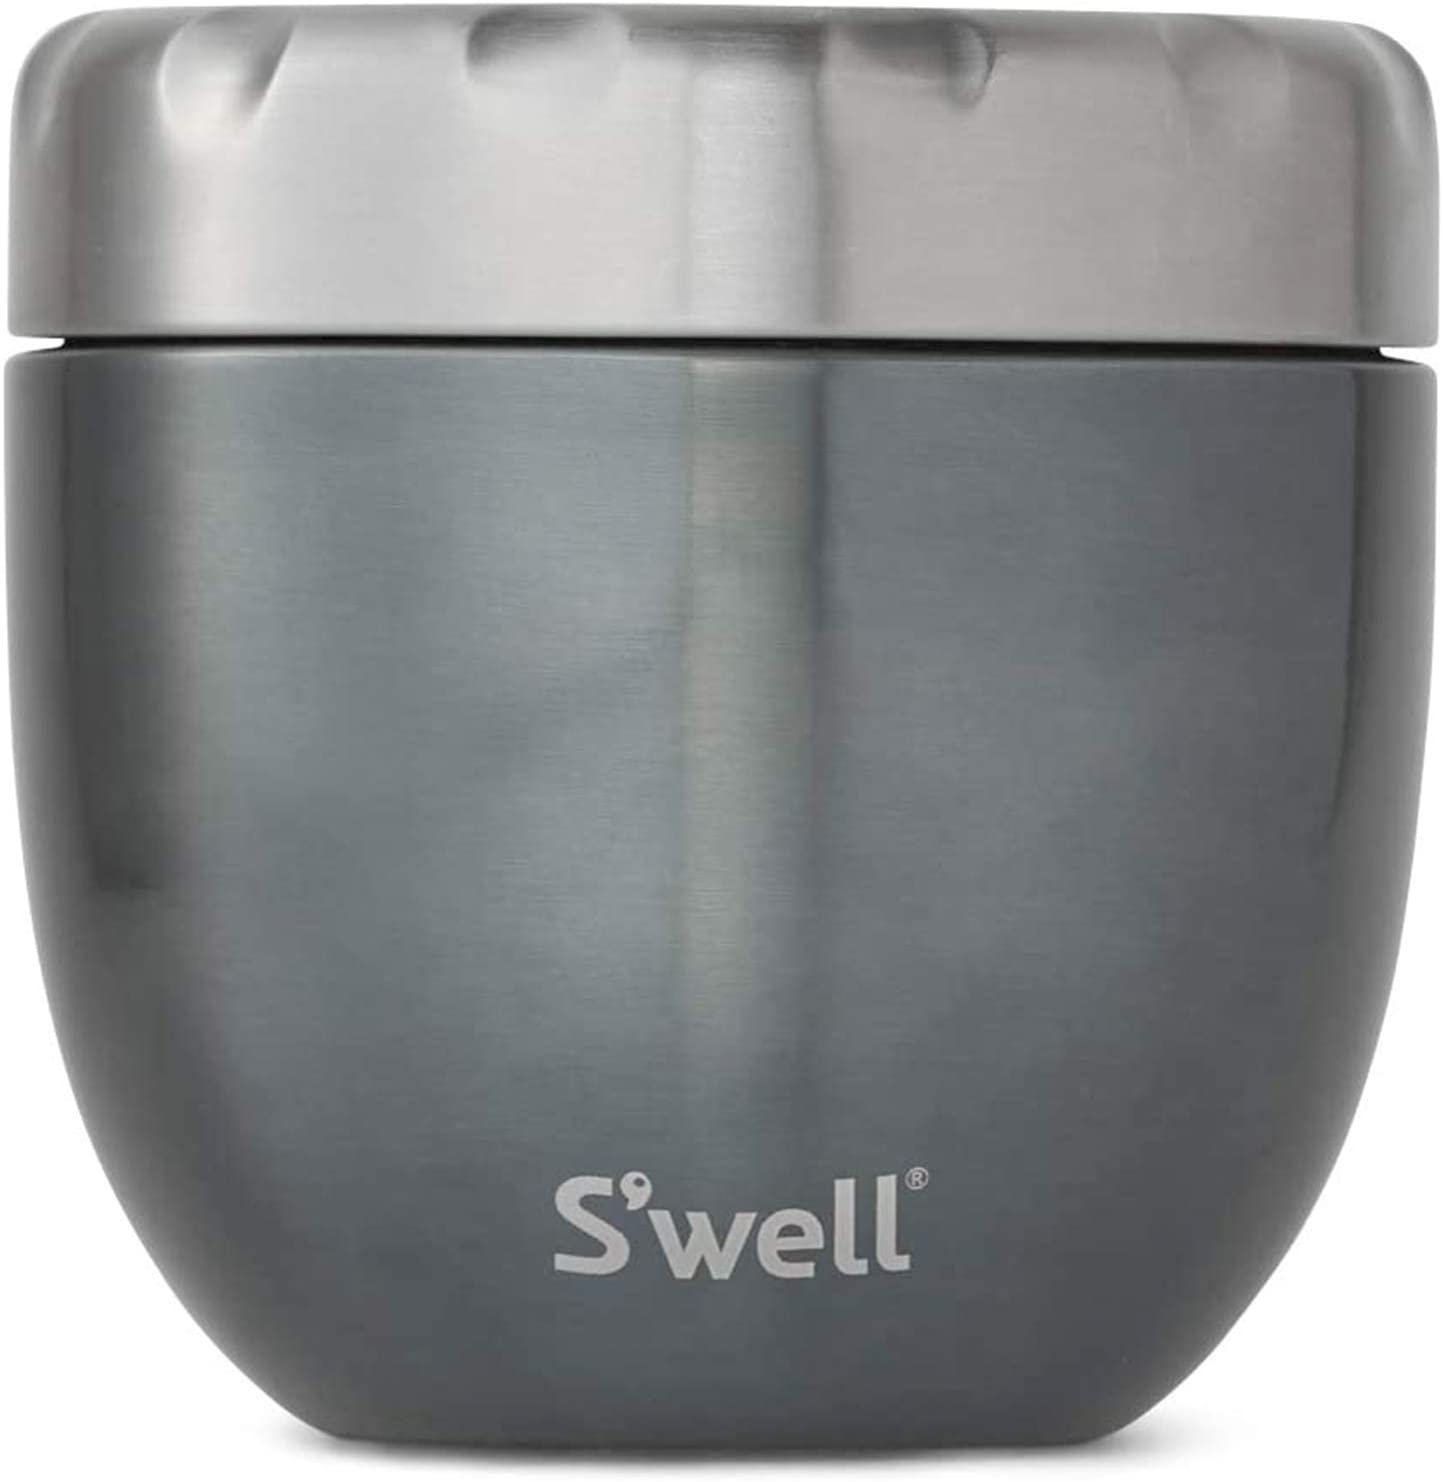 S'well Stainless Steel Food Bowls - 21.5 Oz - Blue Suede - Triple-Layered Vacuum-Insulated Containers Keeps Food and Drinks Cold for 11 Hours and Hot for 7 - with No Condensation - BPA Free